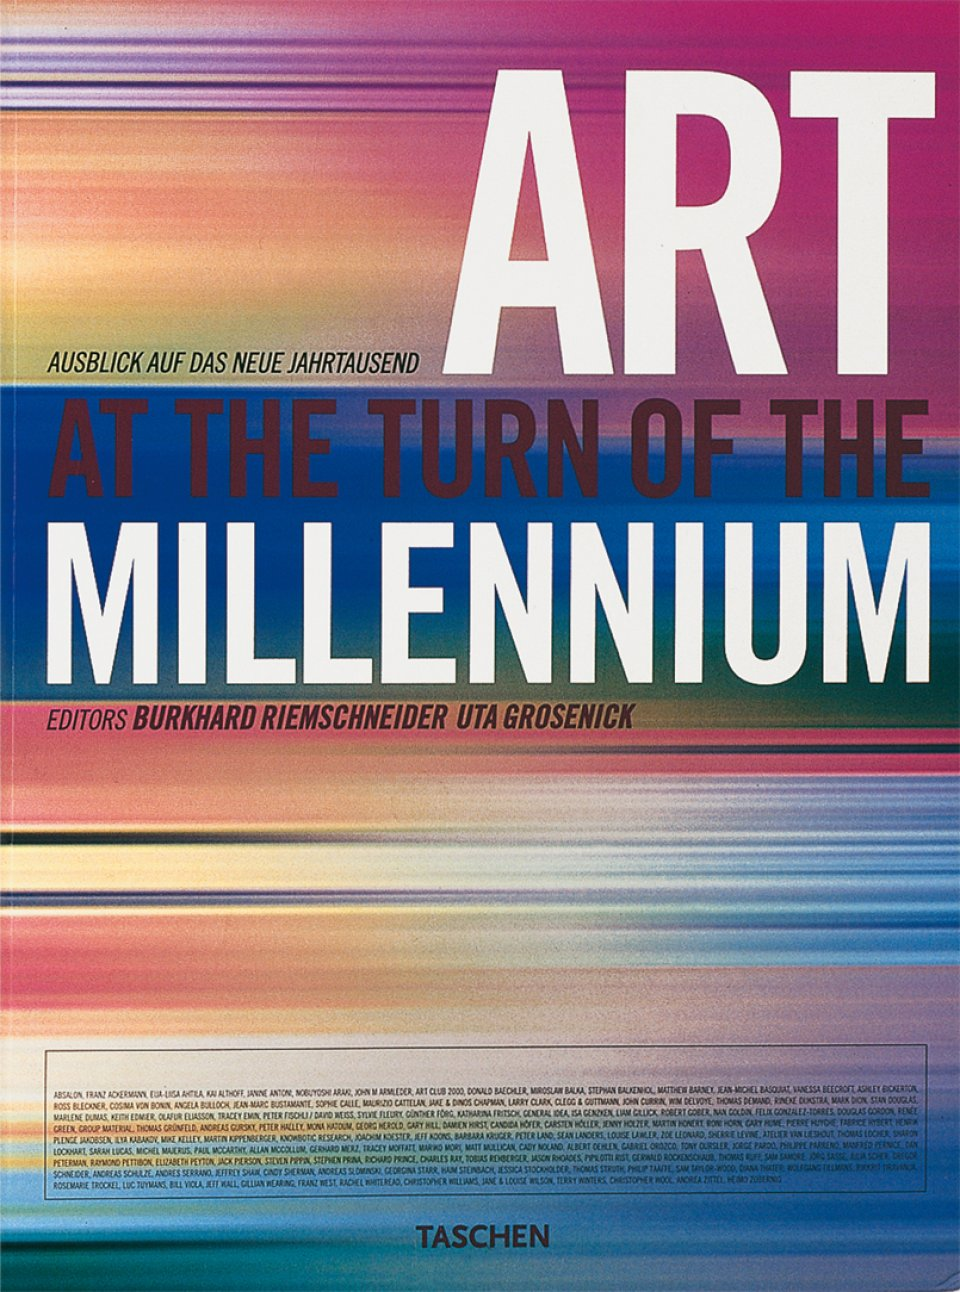 Art at the Turn of the Millennium by Burkhard Riemschneider. TASCHEN Books